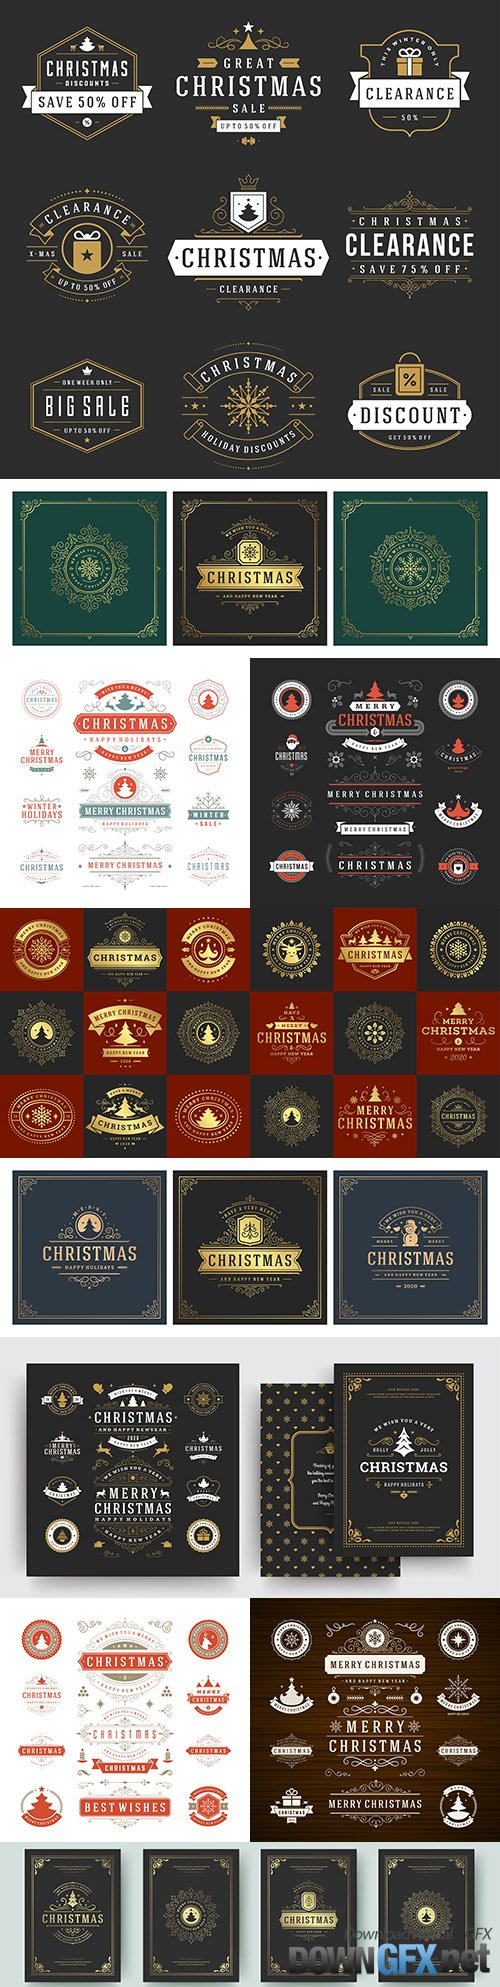 Christmas labels and design elements for greeting card logos